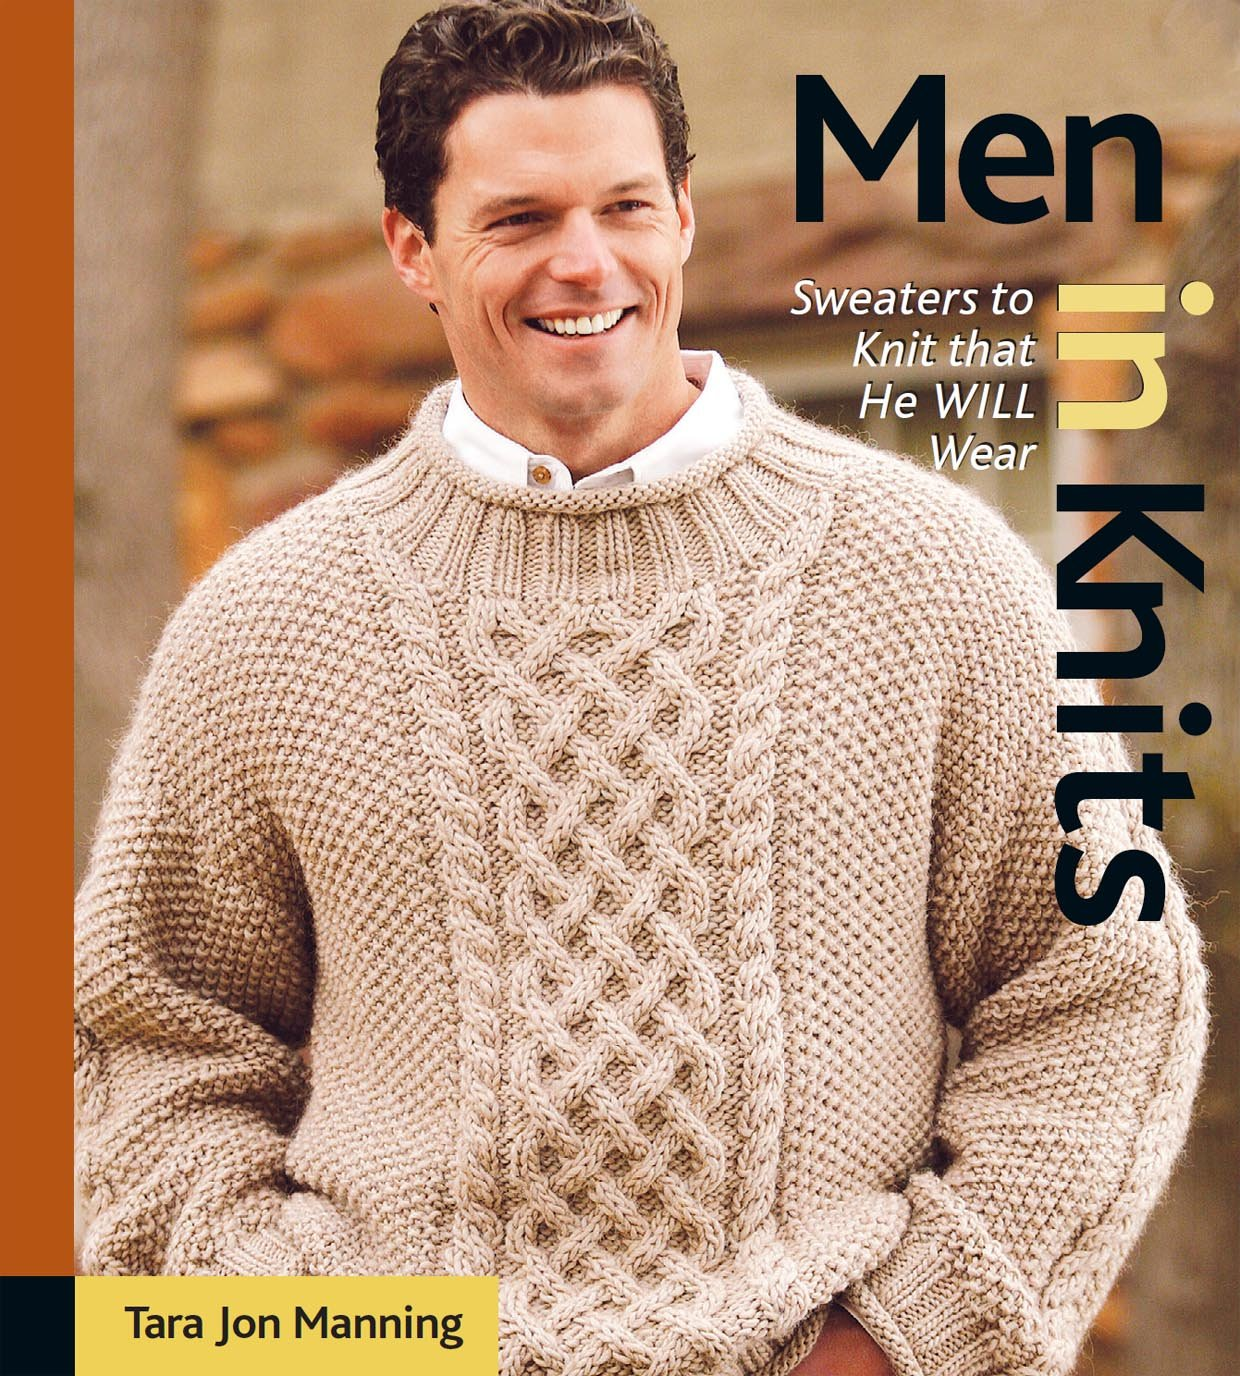 Sam Barsky: The Man of Many Sweaters